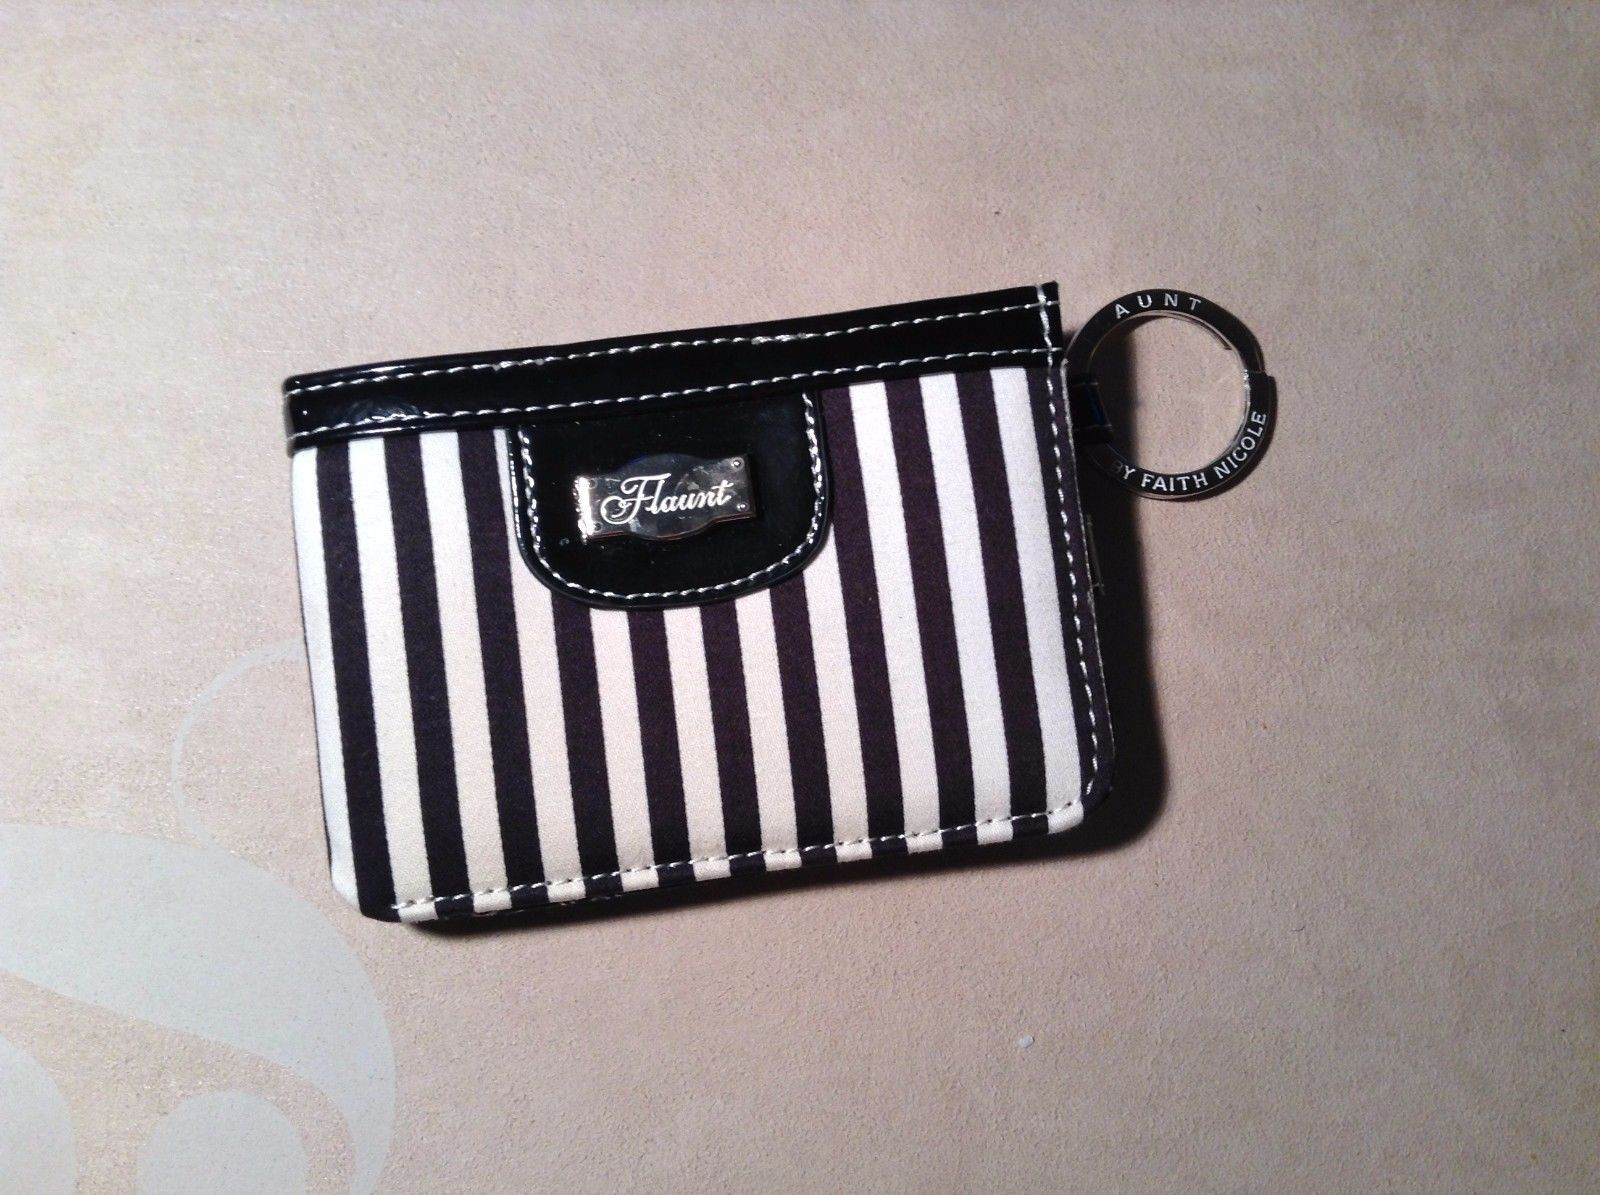 New Faith Nicole Flaunt Wallet Black White Stripes Two Folded Three Card Holder